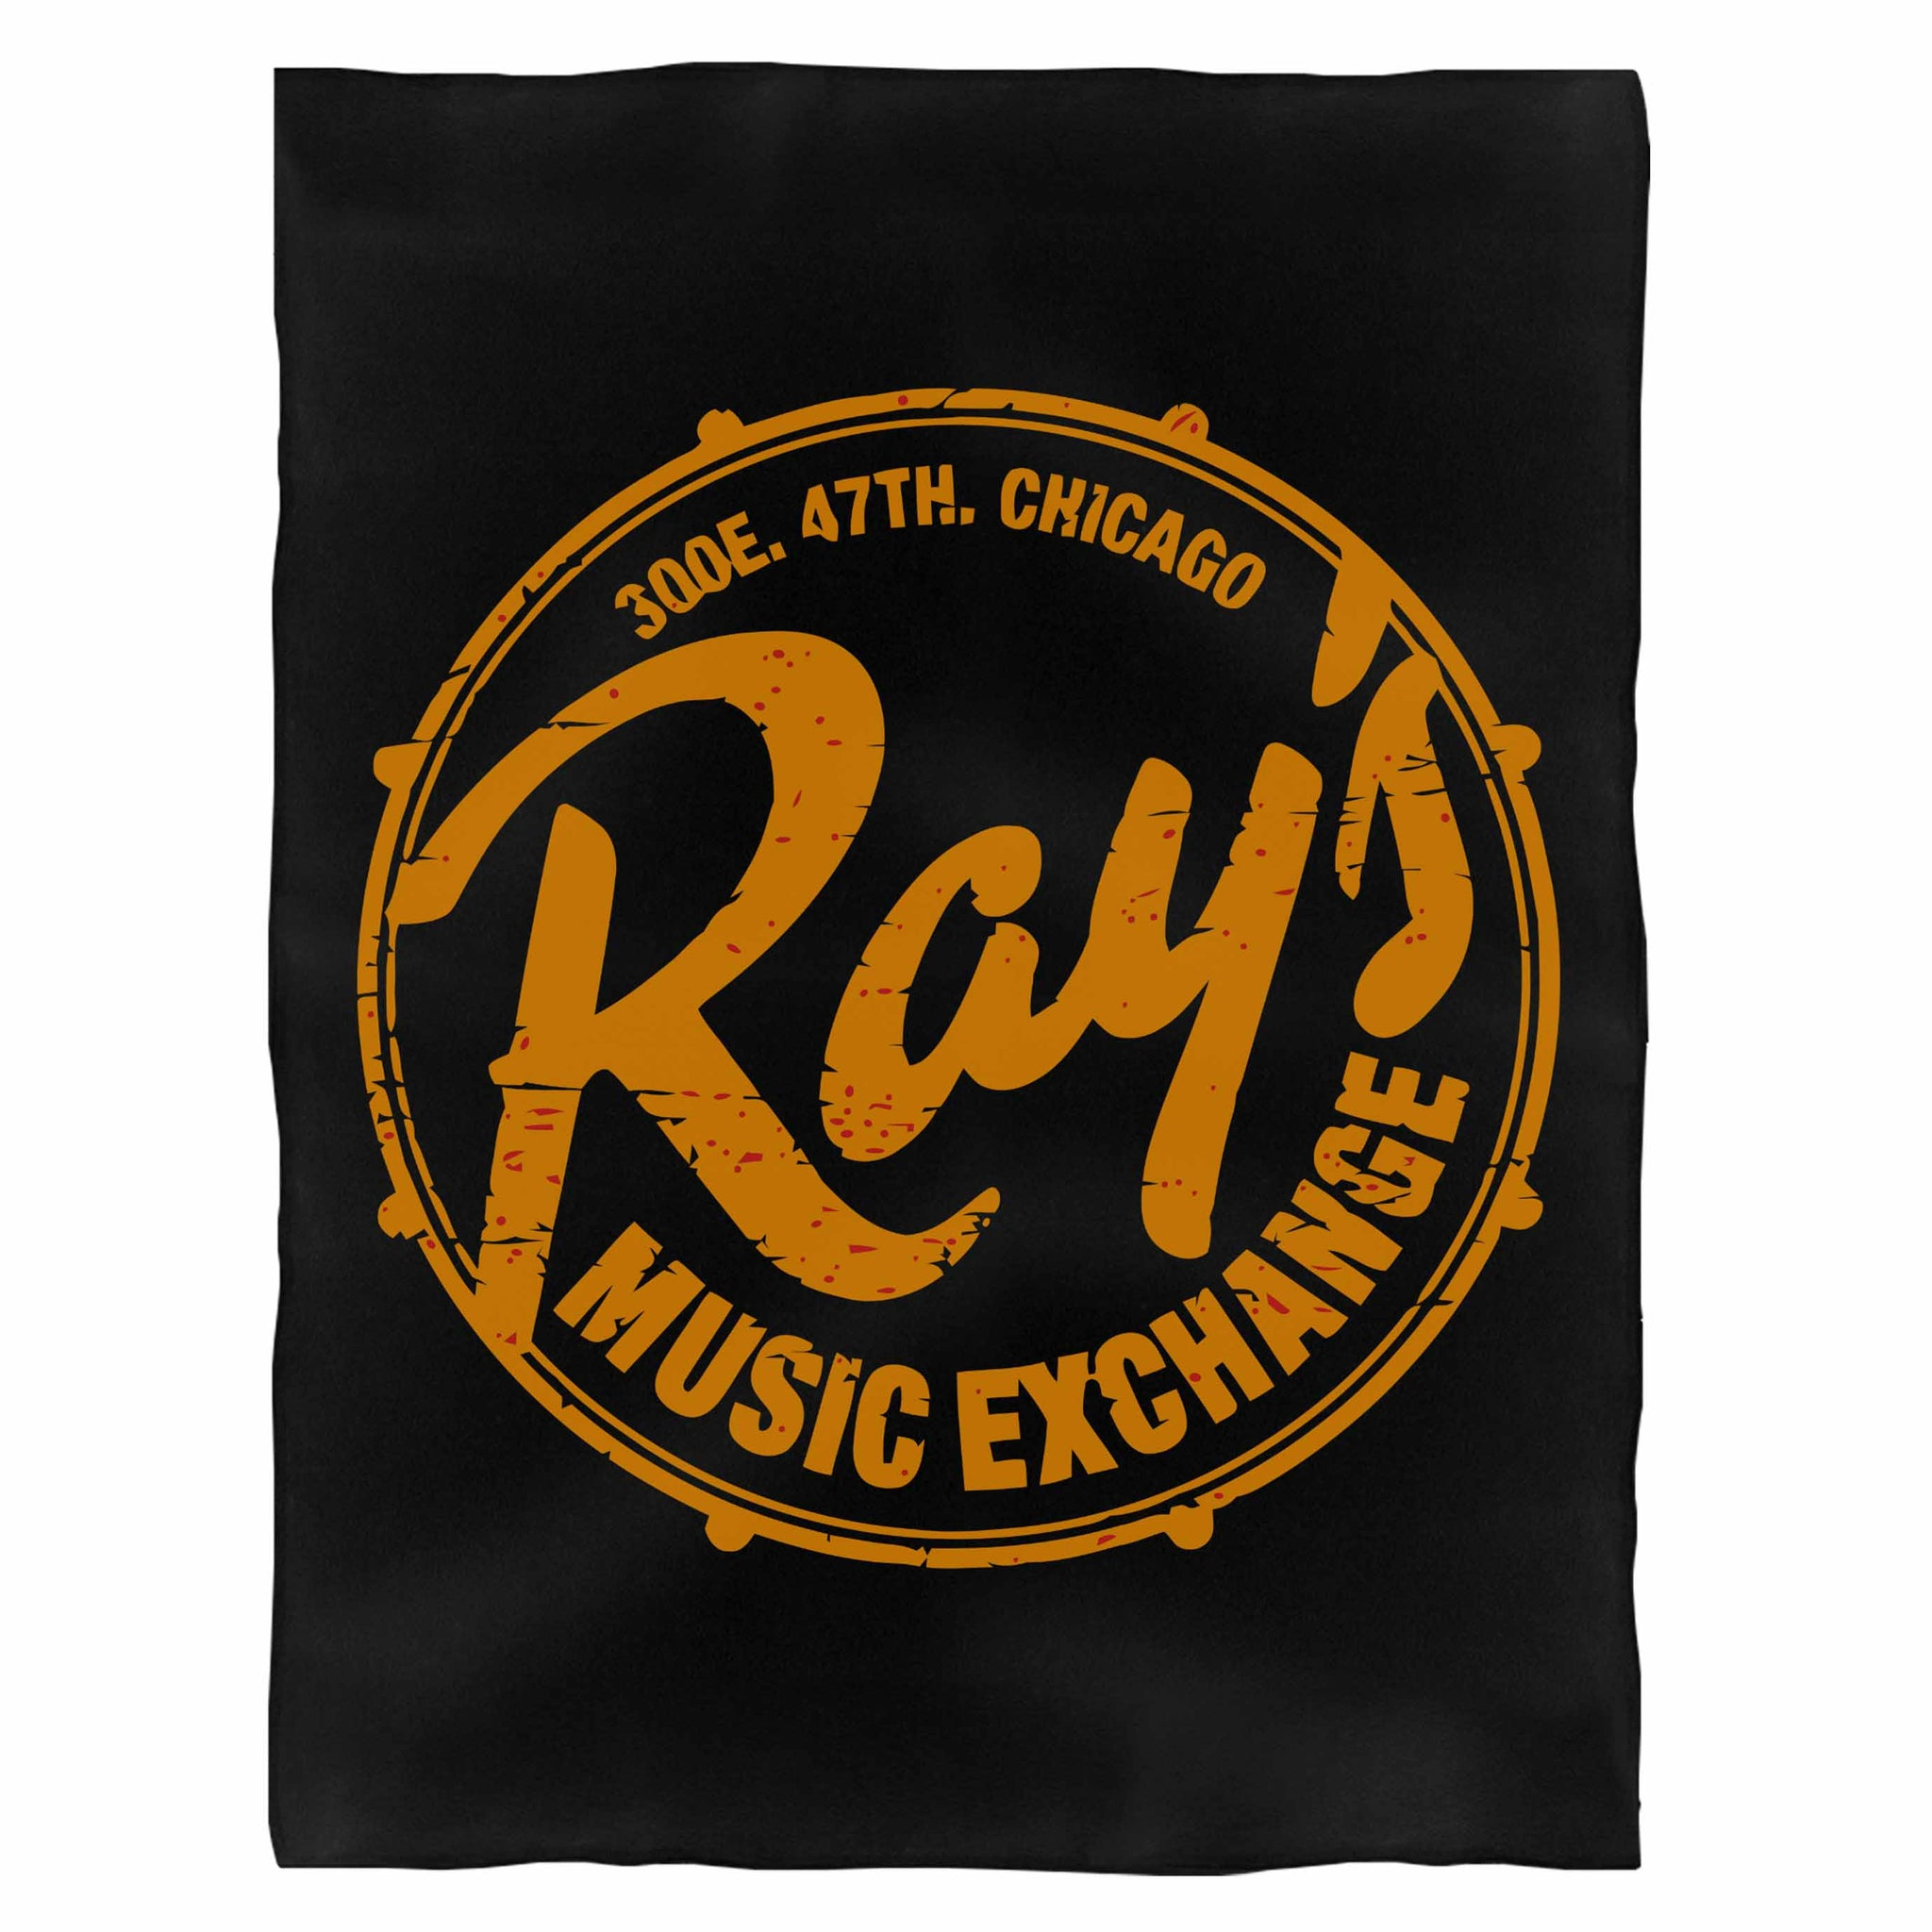 Rays Music Exchange Fleece Blanket